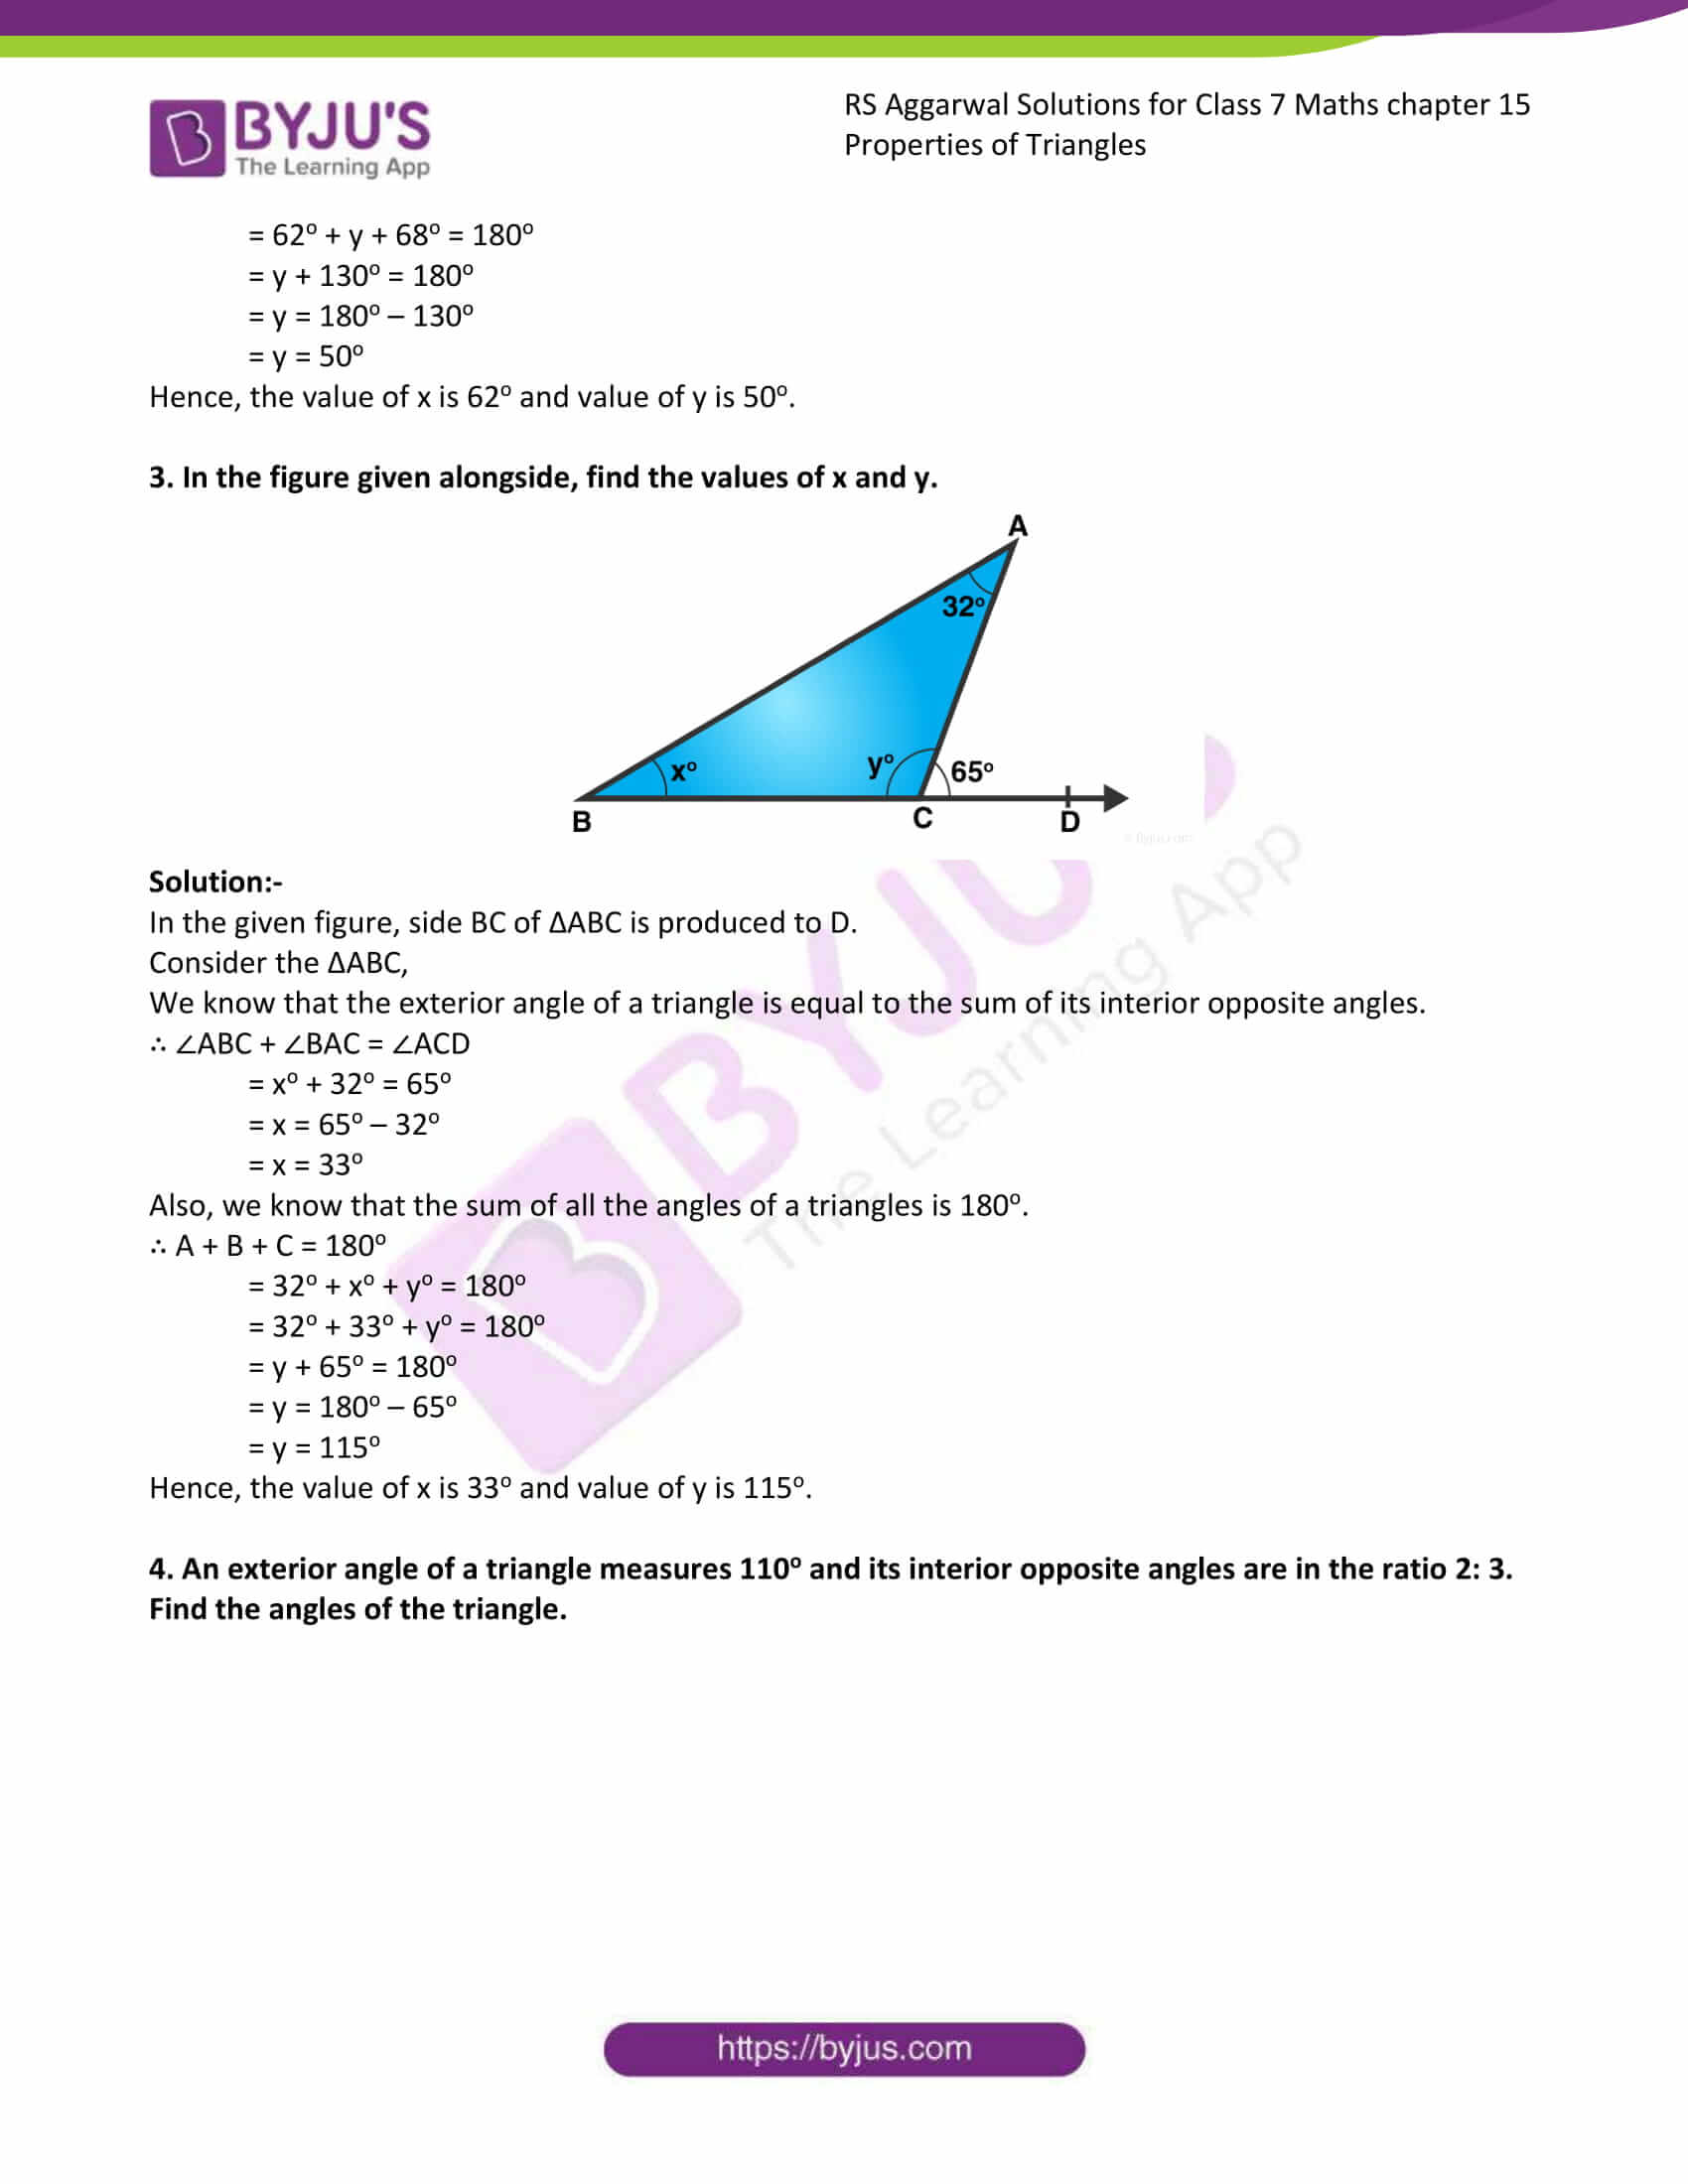 RS Aggarwal Solutions Class 7 Maths Chapter 15 Free Solutions 05